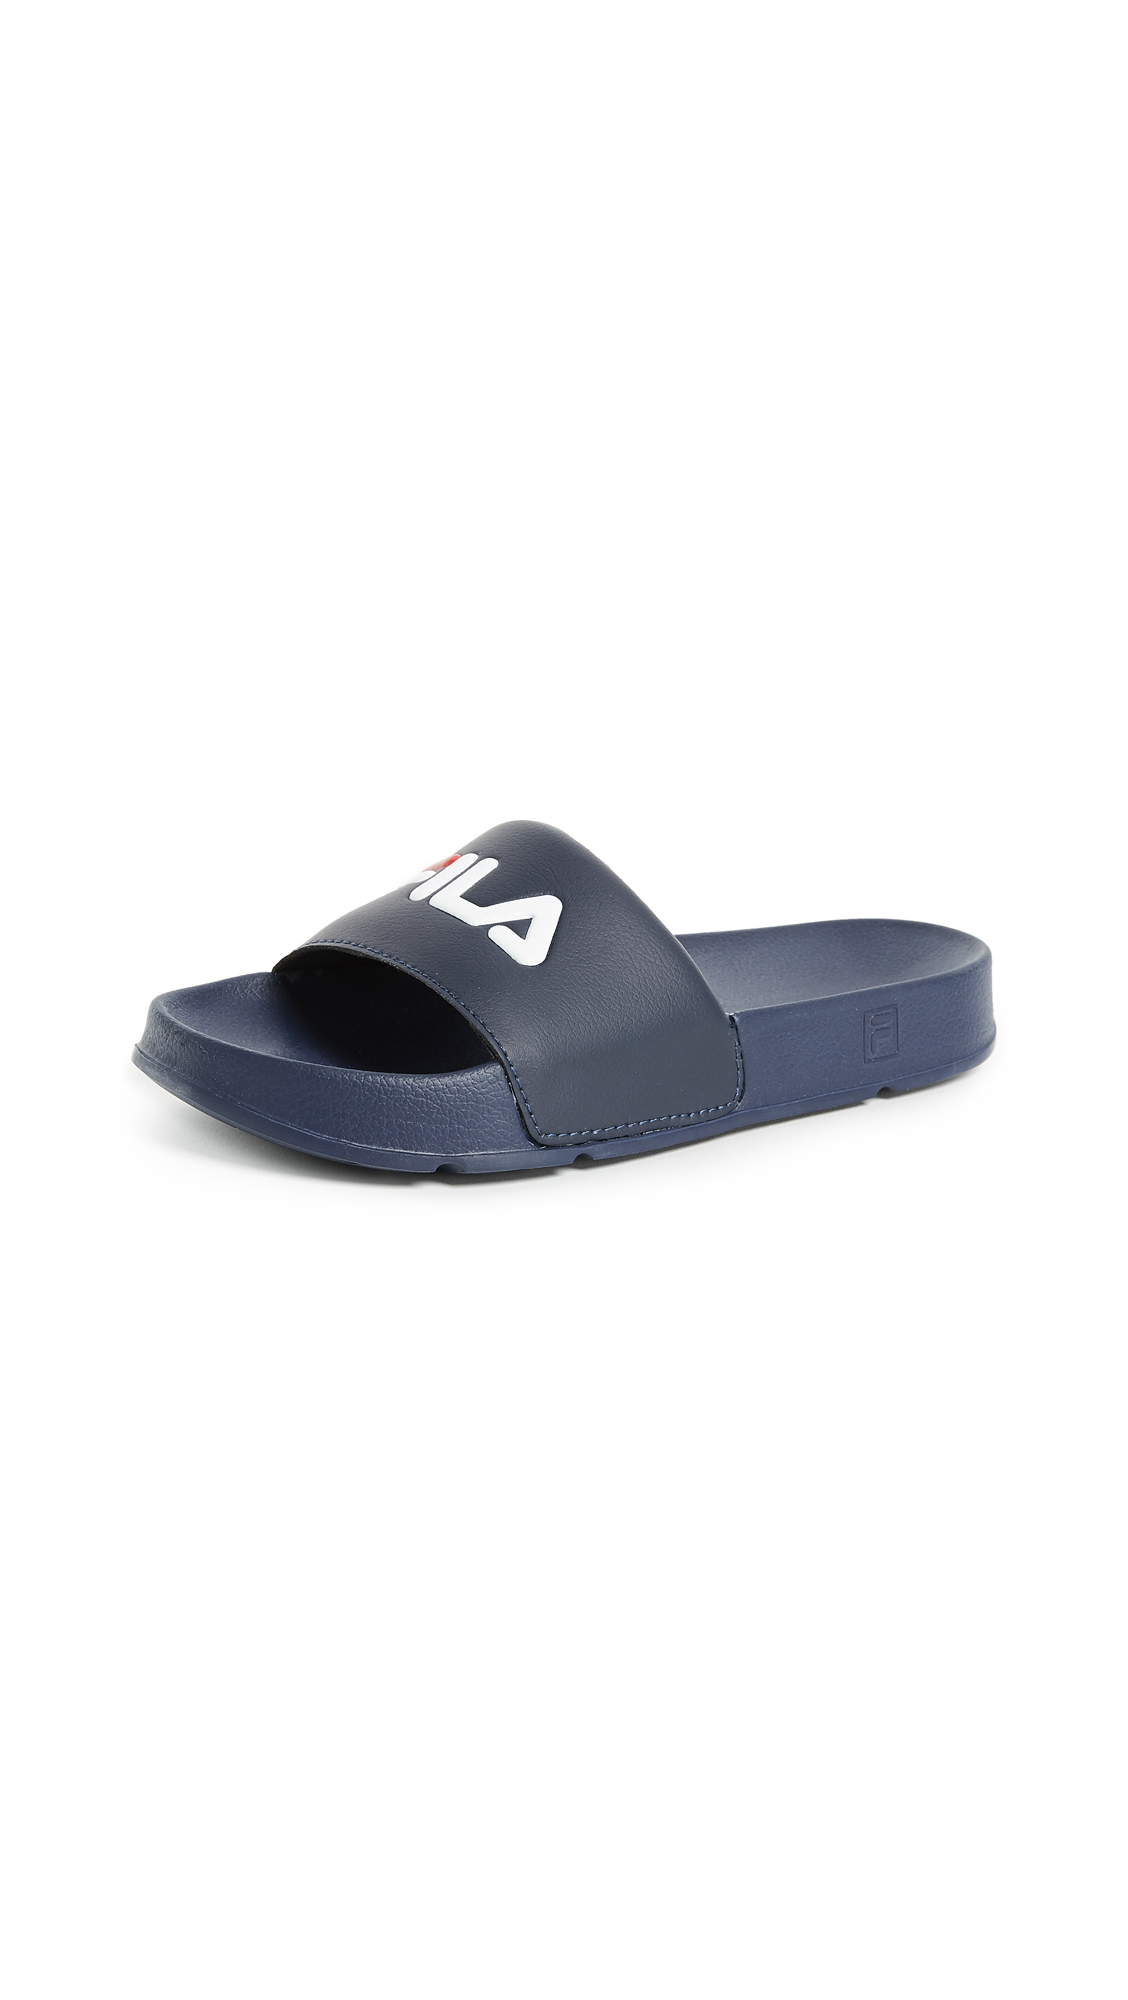 Fila Drifter Slides - Fila Navy/Fila Red/White